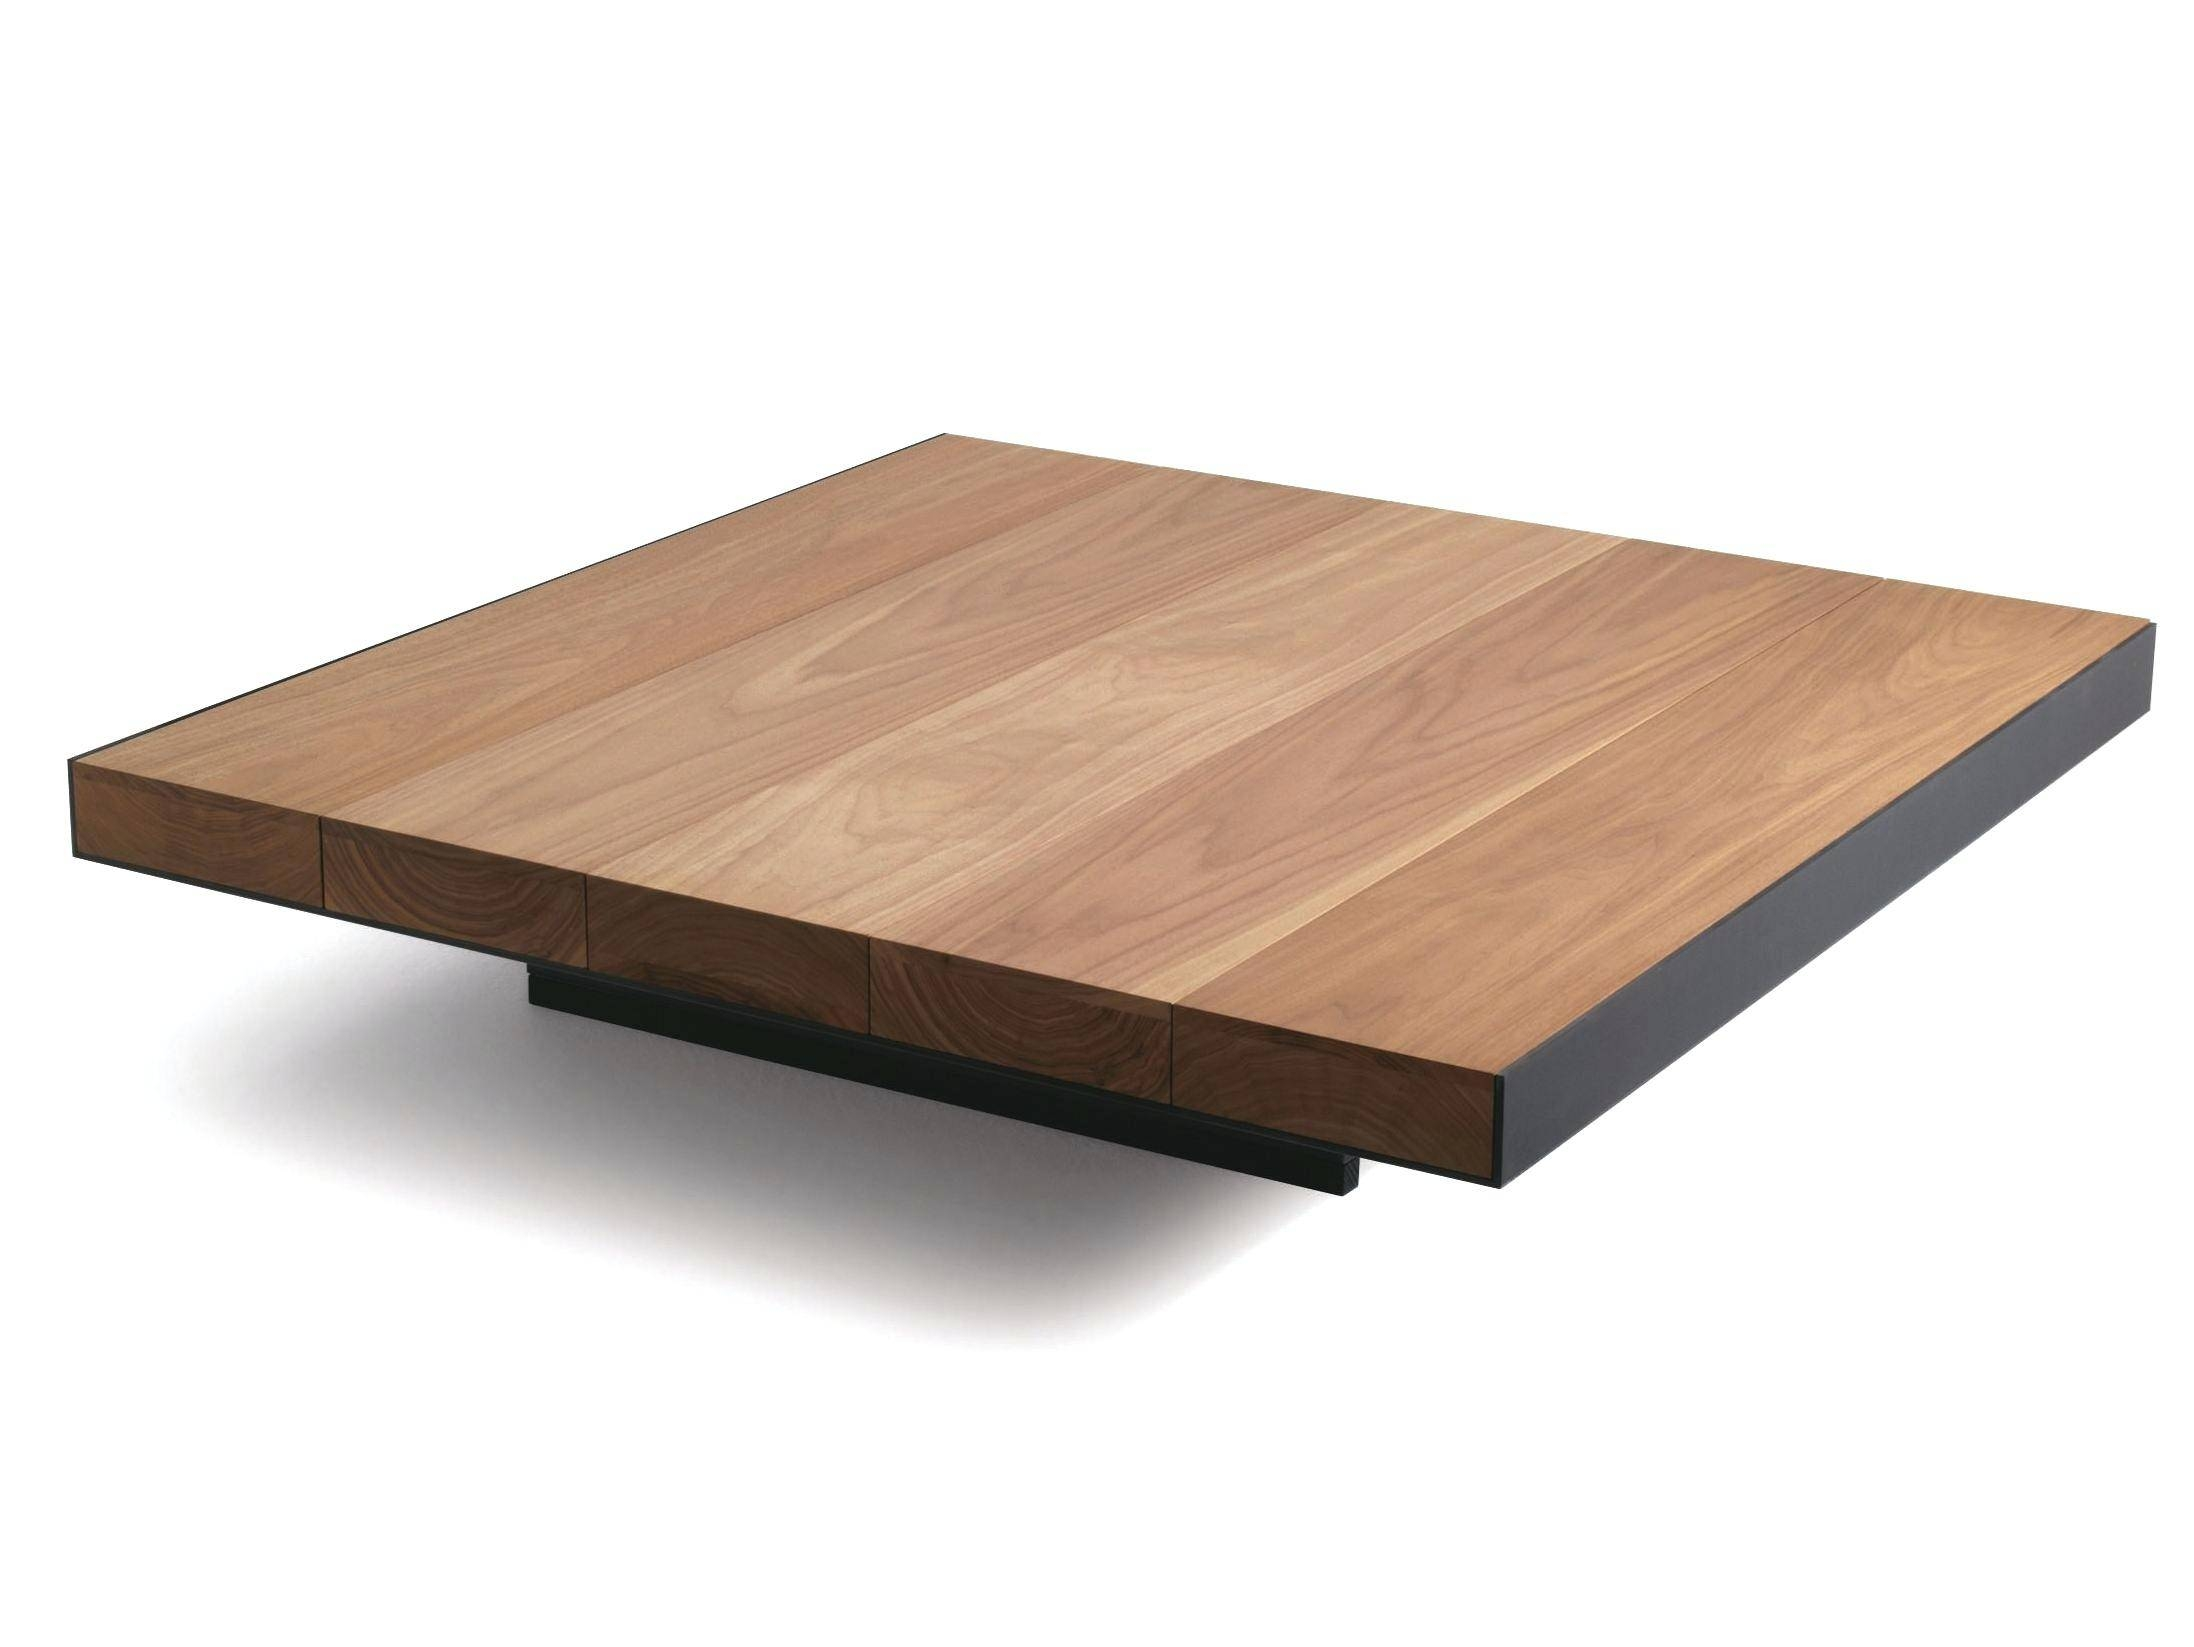 Coffee Table ~ Low Coffee Tables Square Orp J11 S The Modena pertaining to Large Low Square Coffee Tables (Image 6 of 30)